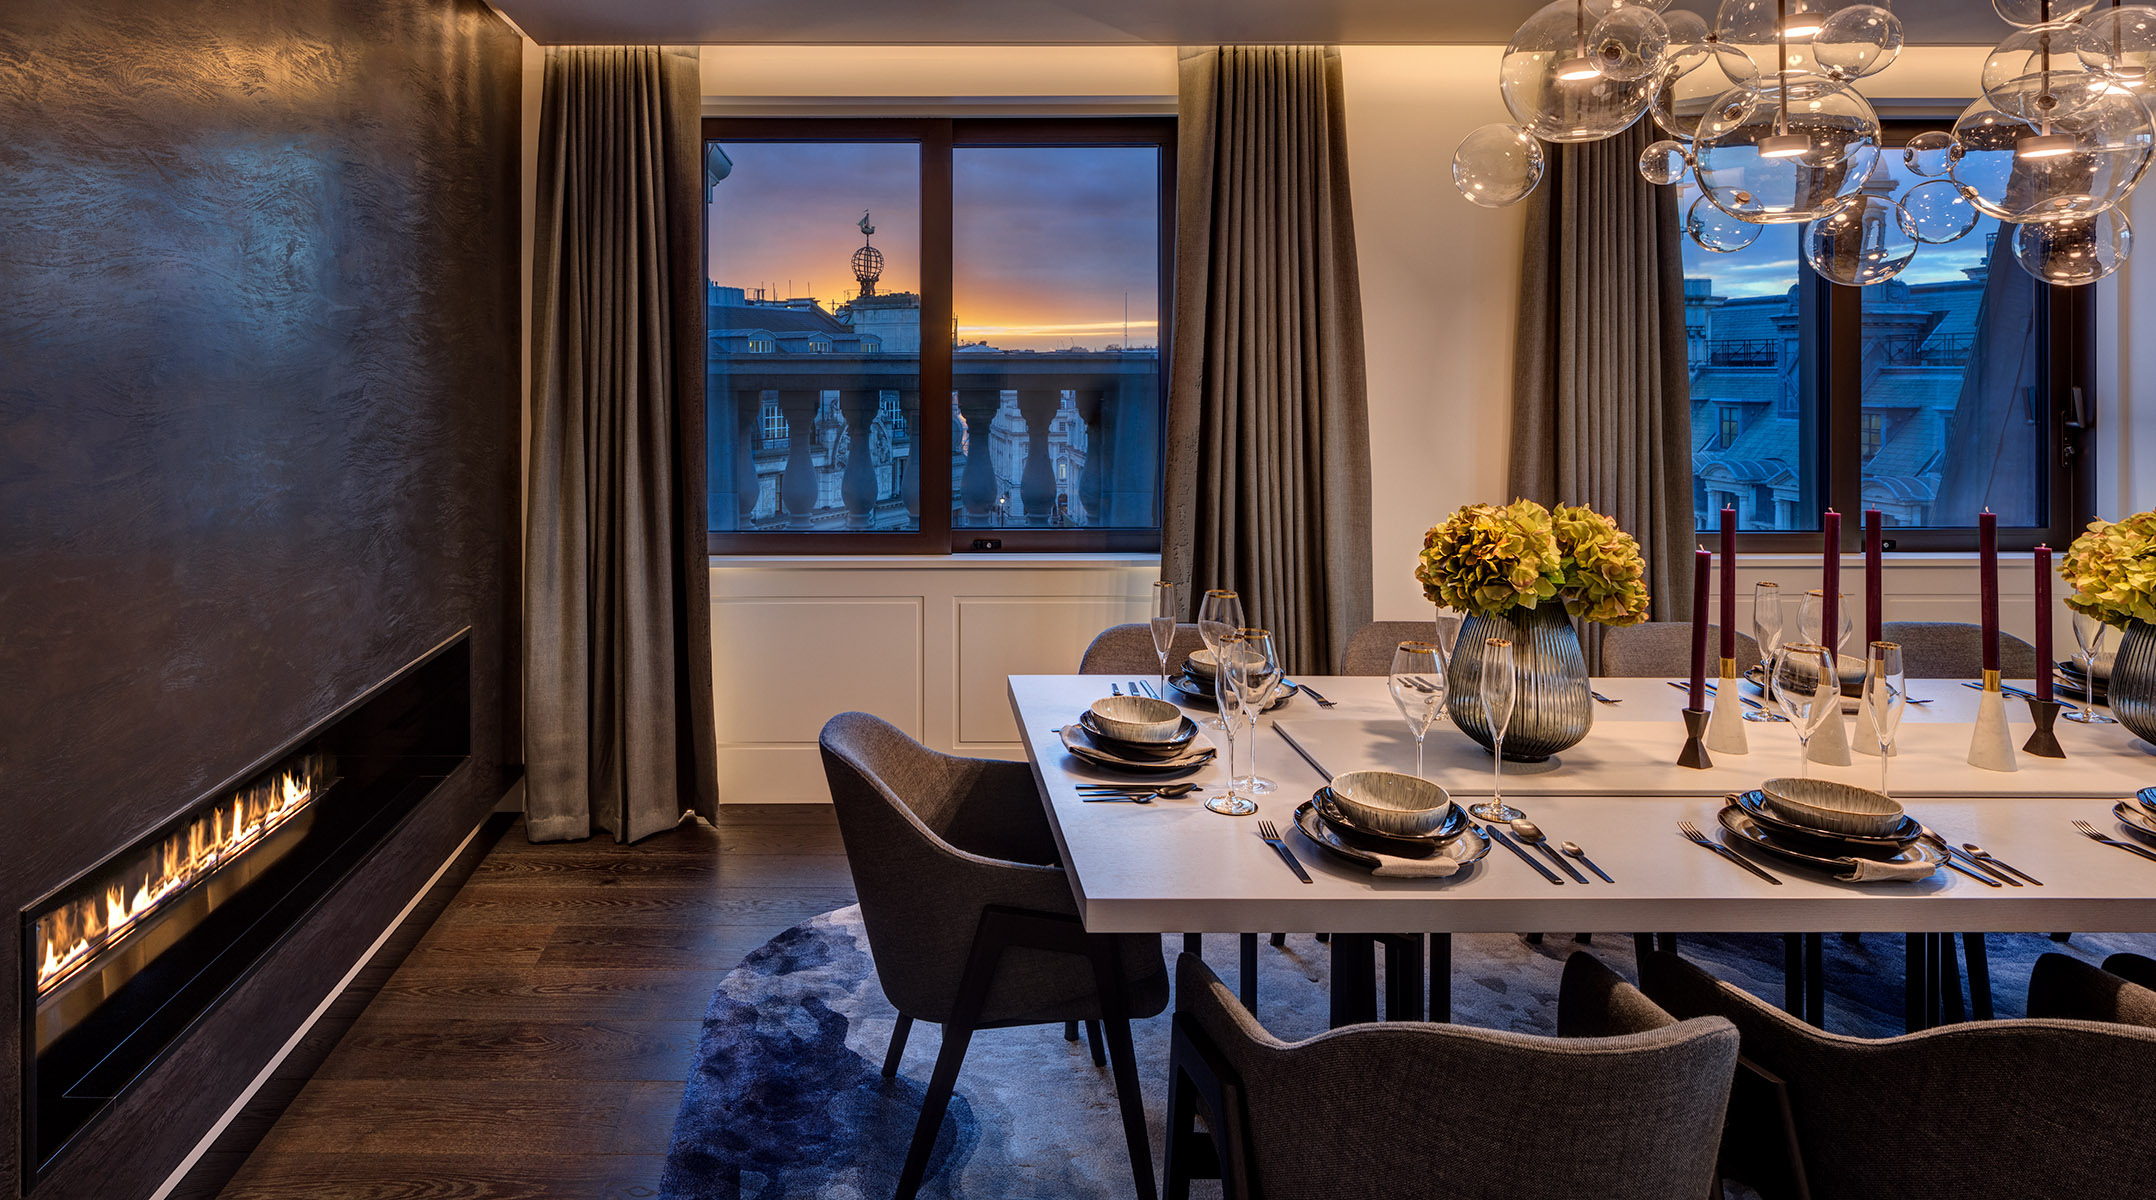 Photograph of a dining area with contemporary fireplace and a view out to London rooftops at sunset.